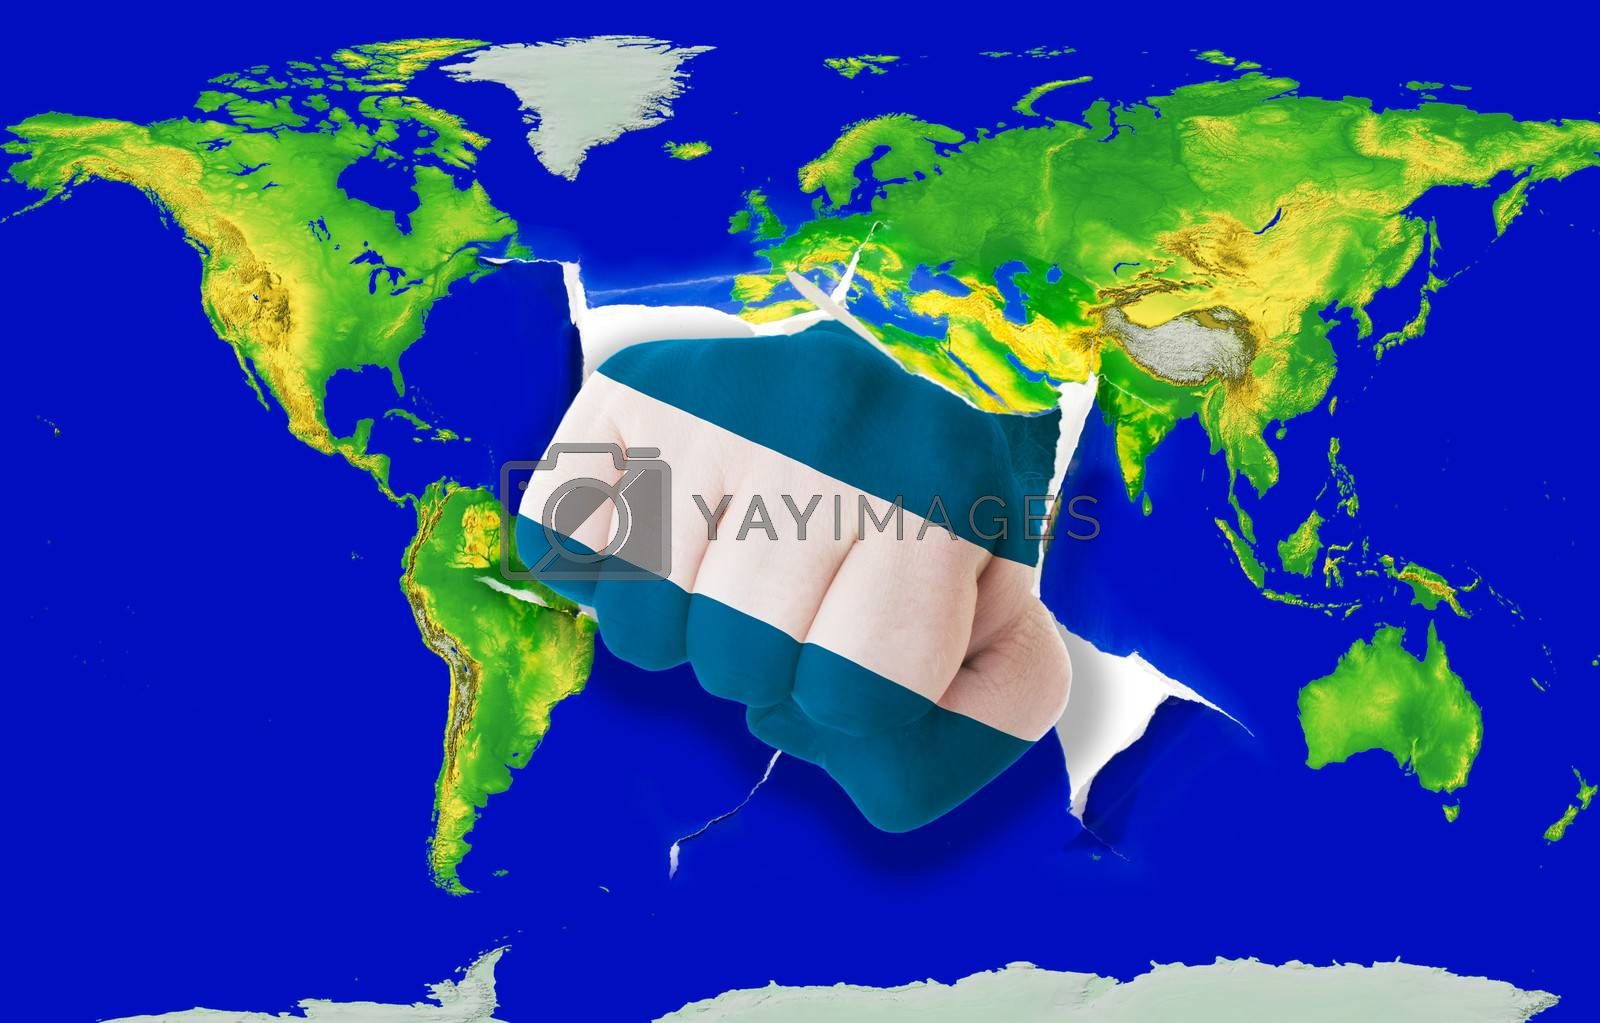 Fist in color national flag of el salvador punching world map as symbol of export, economic growth, power and success